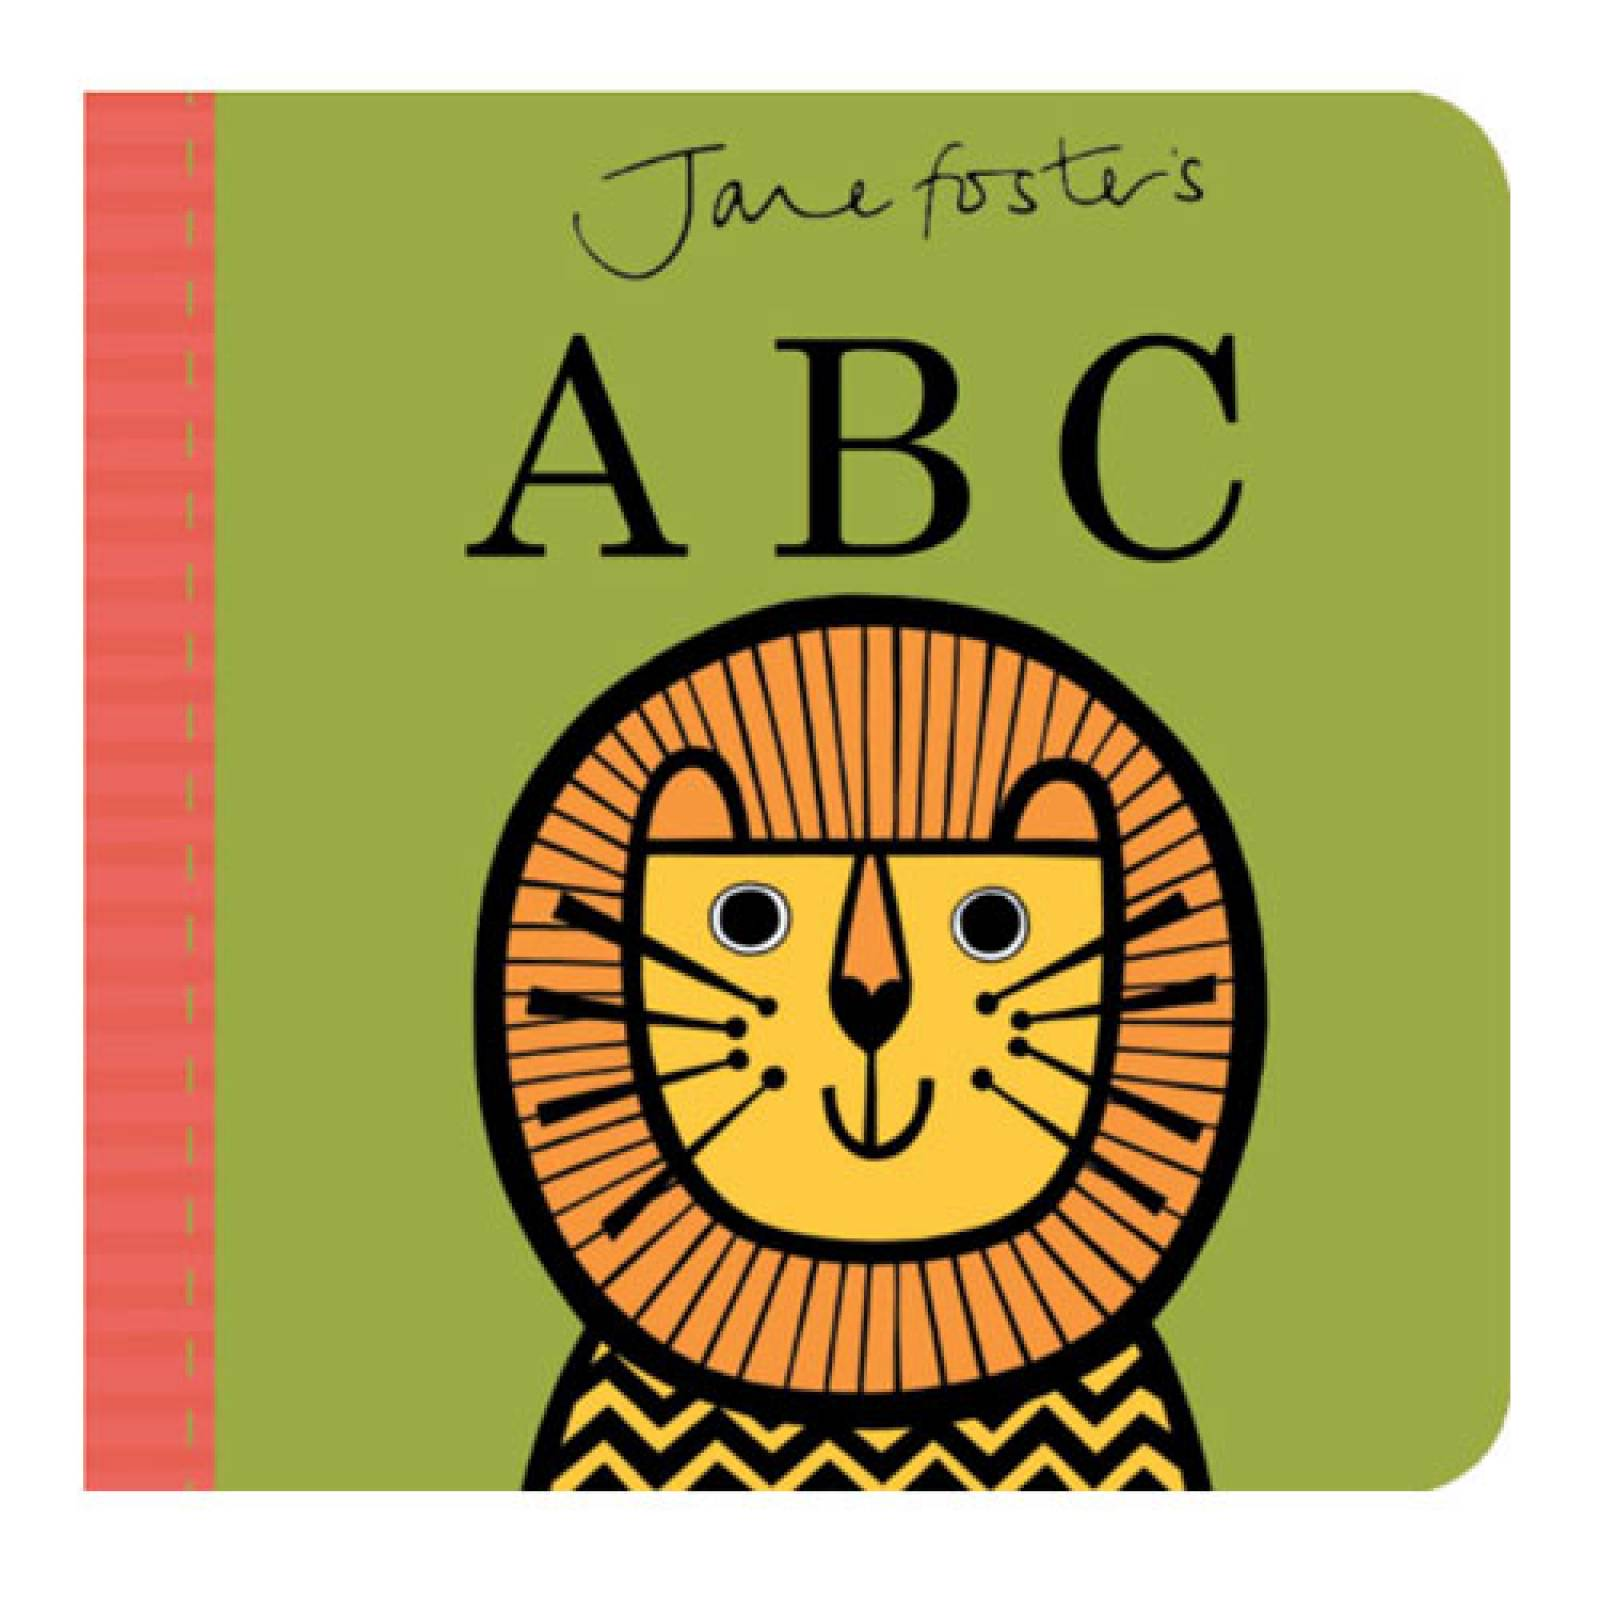 Jane Foster's ABC Board Book thumbnails